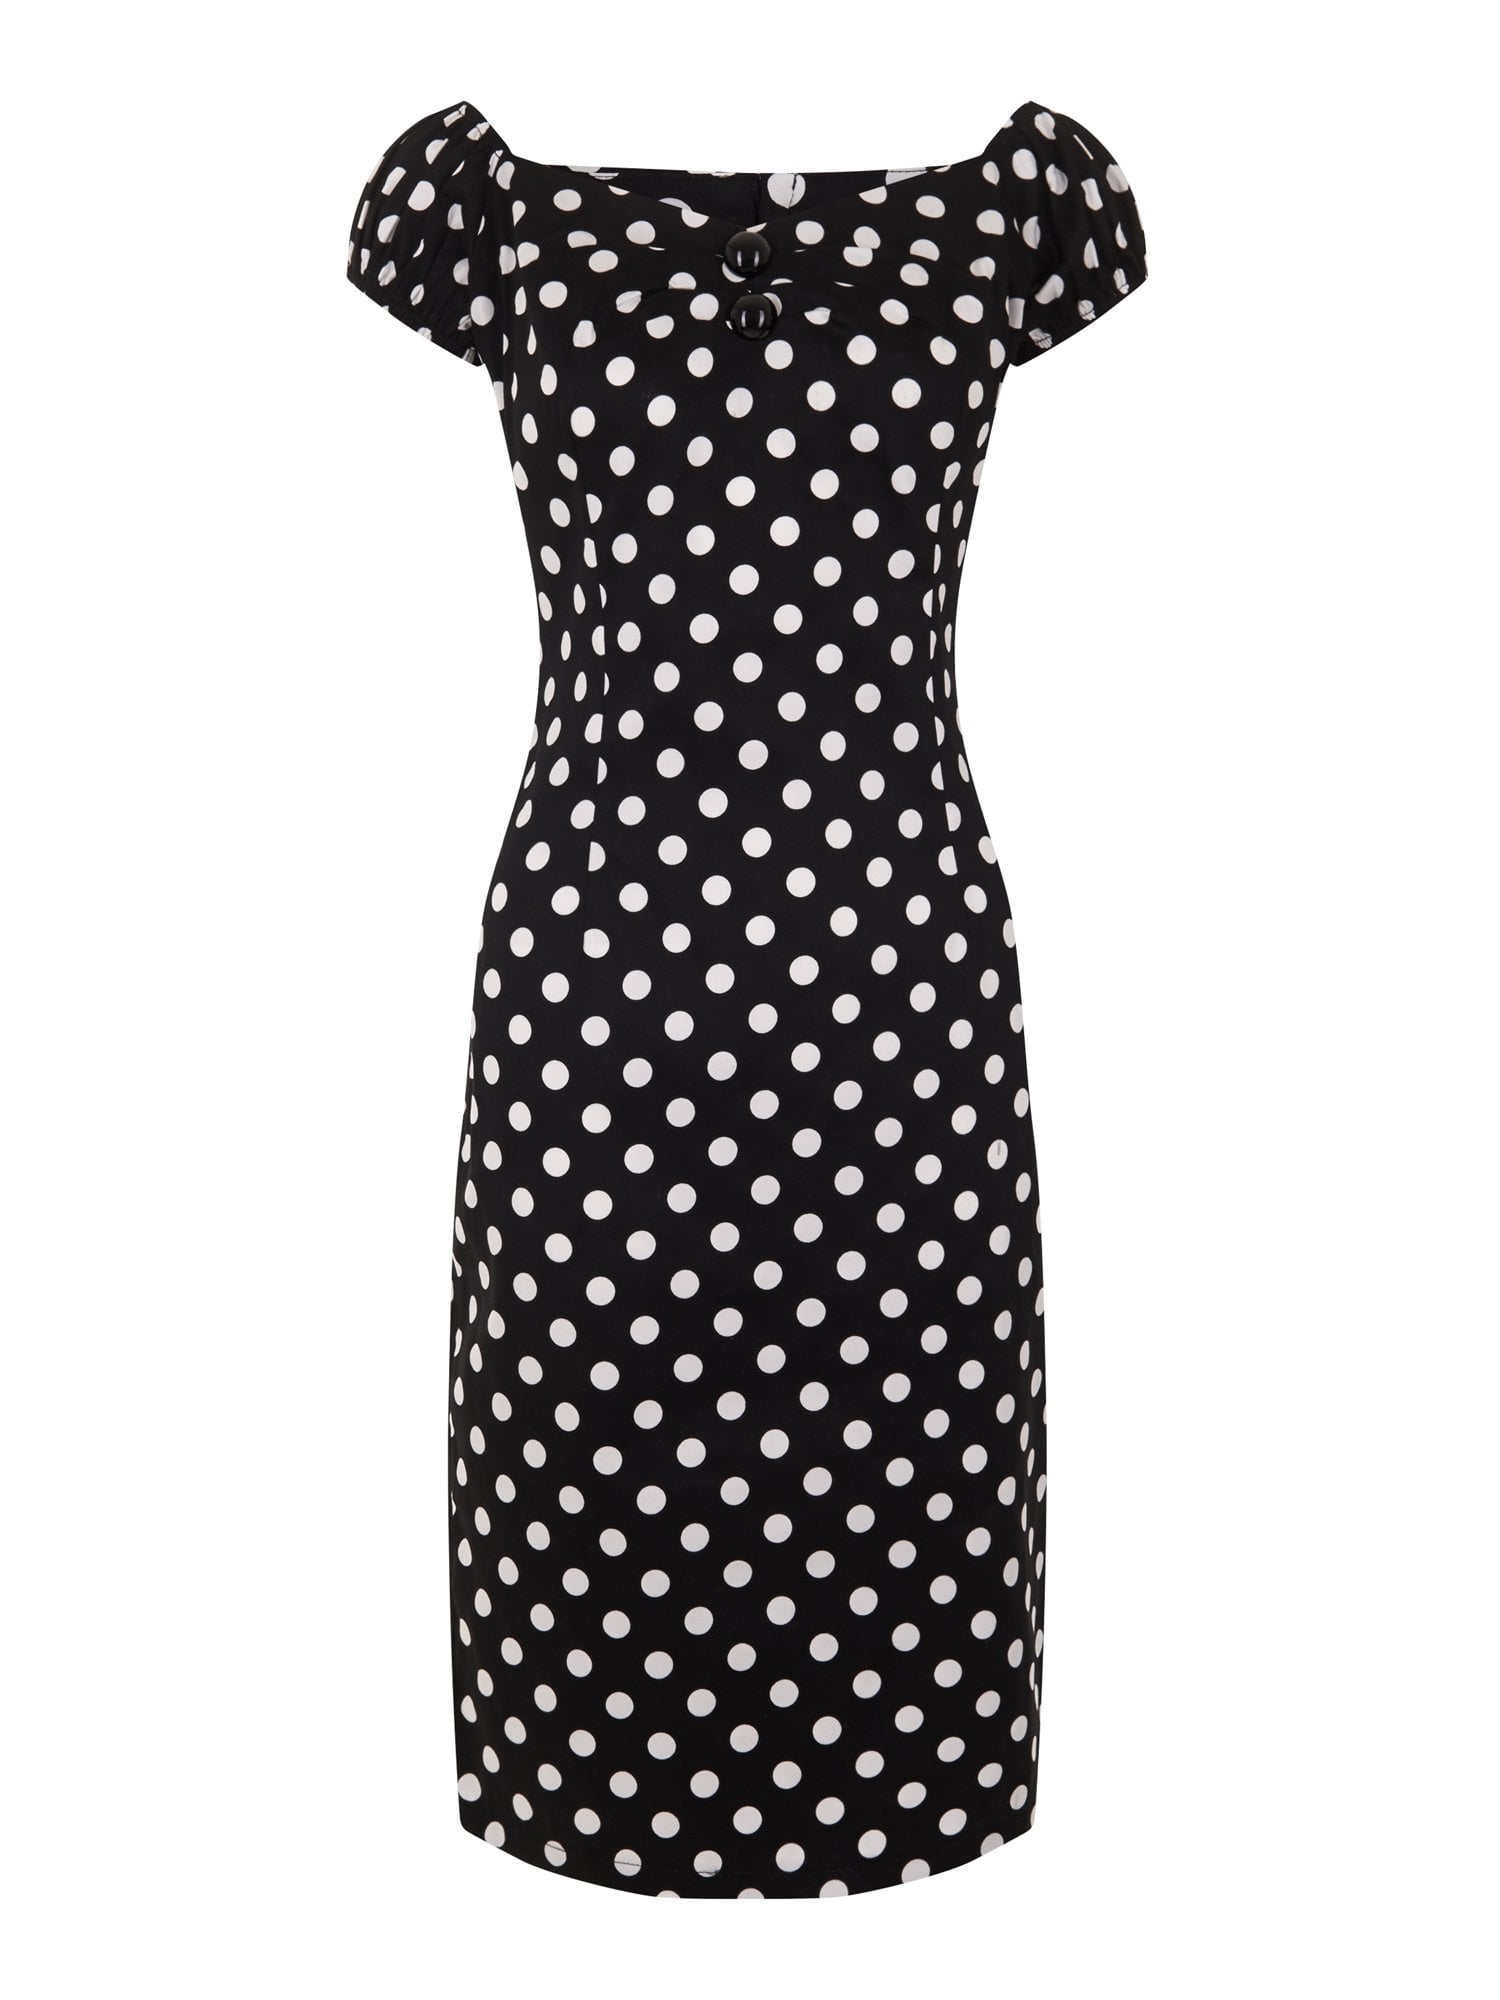 Dolores Polka Dot Pencil Dress